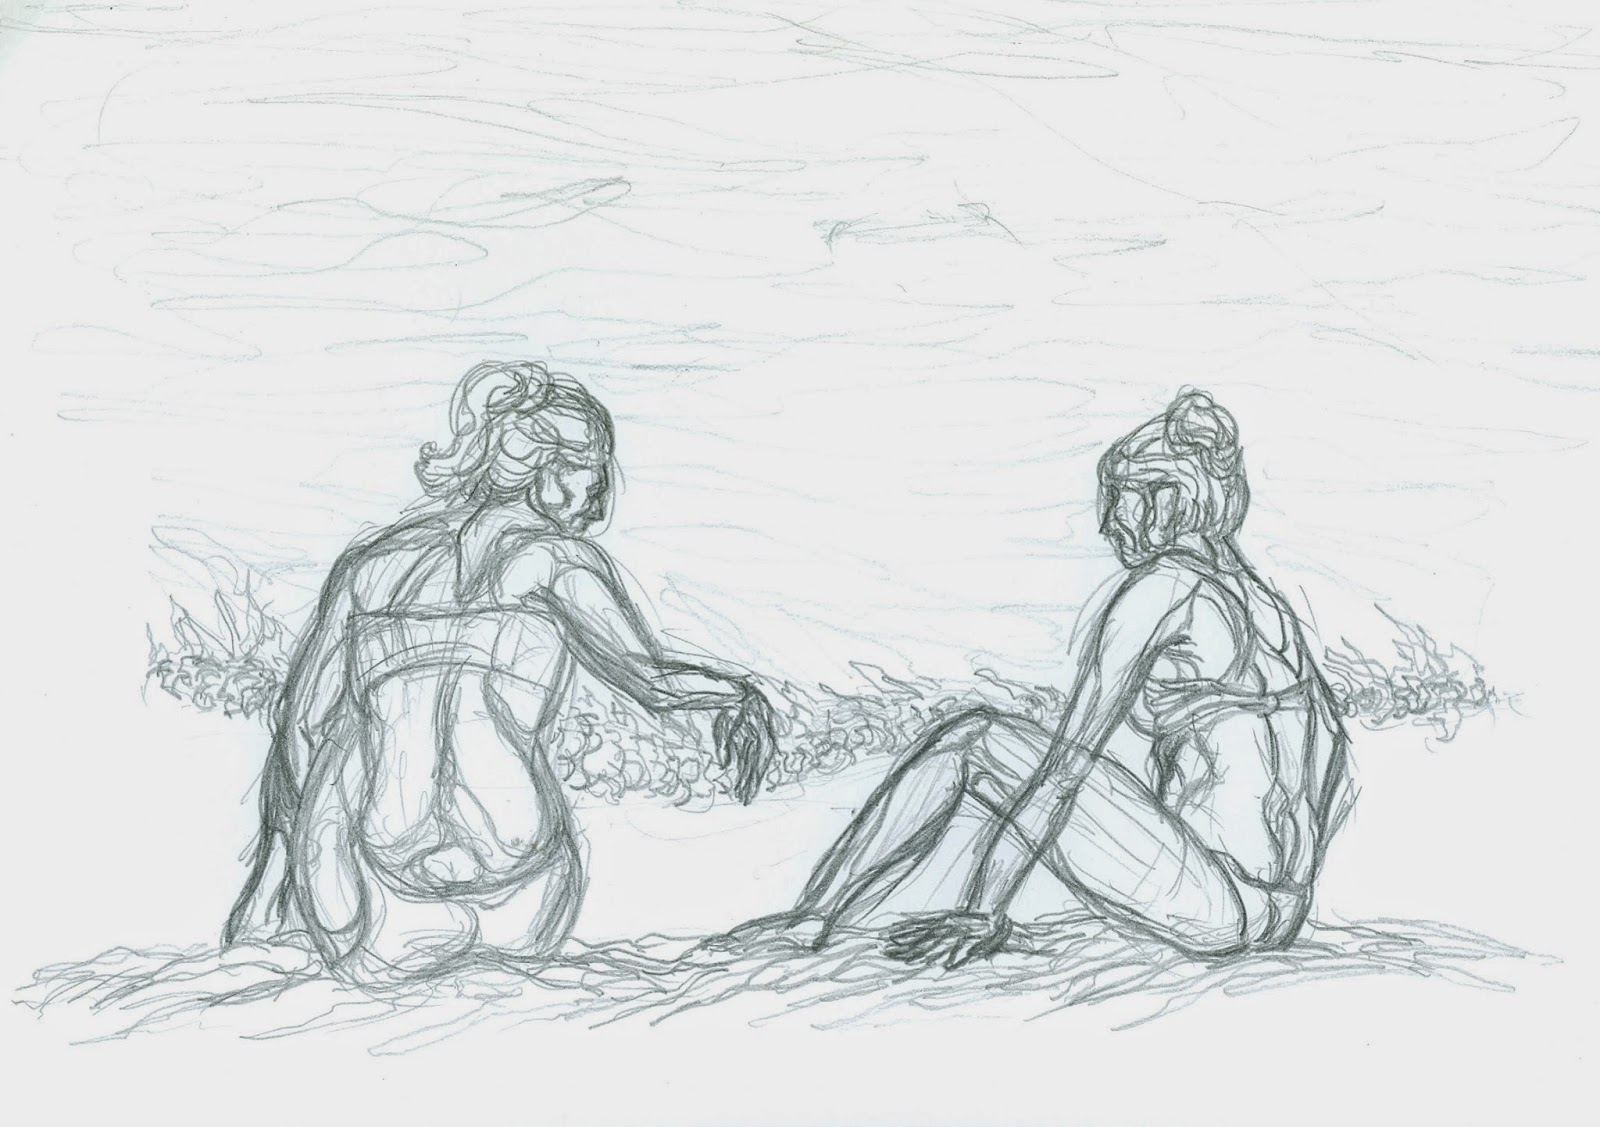 This Is A Simple Cross Contour Drawing Done In Pencil Of Two Girls Talking On The Beach Santa Cruz Quick Sketch As People Who Dont Know